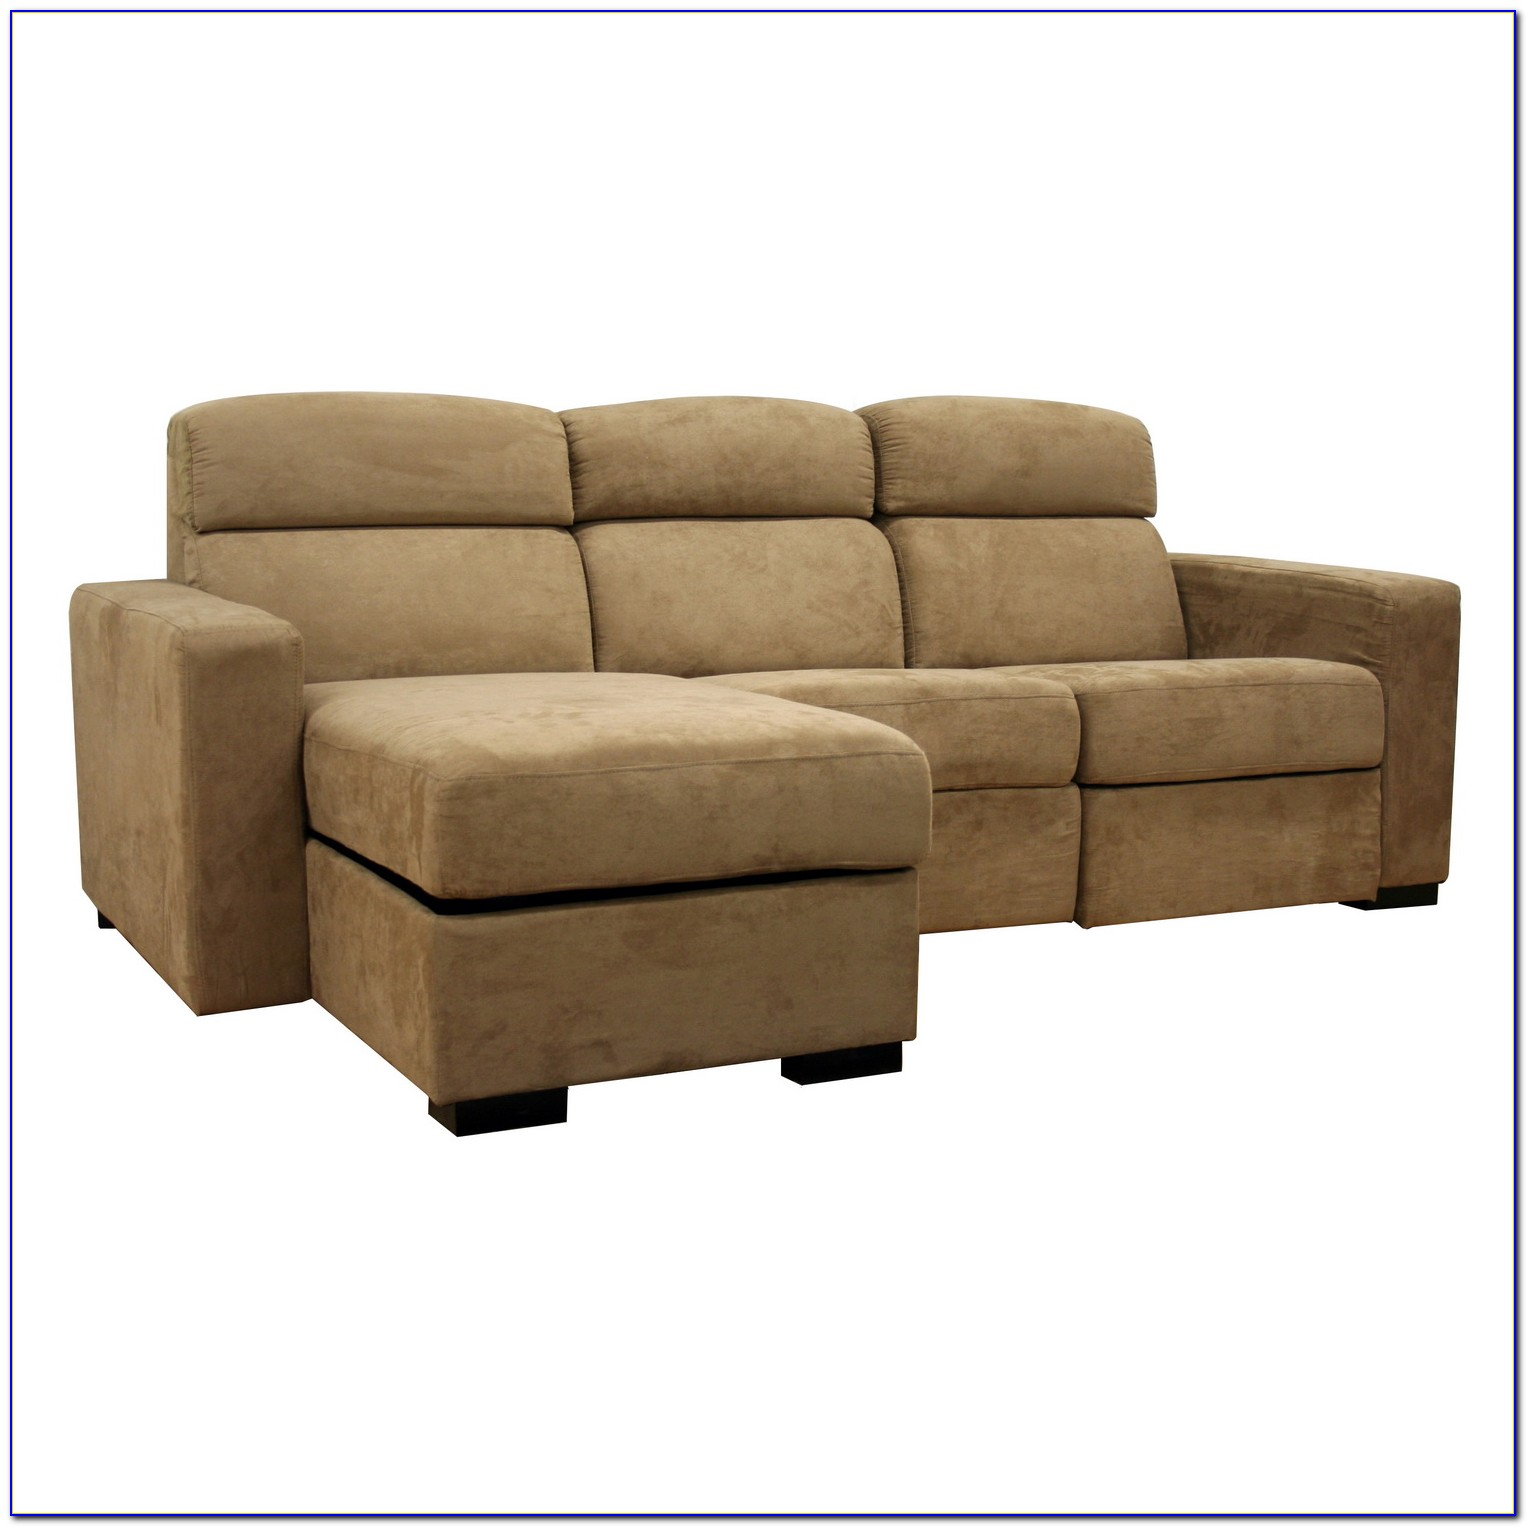 572 Reclining Sectional Sofa With Chaise By Franklin